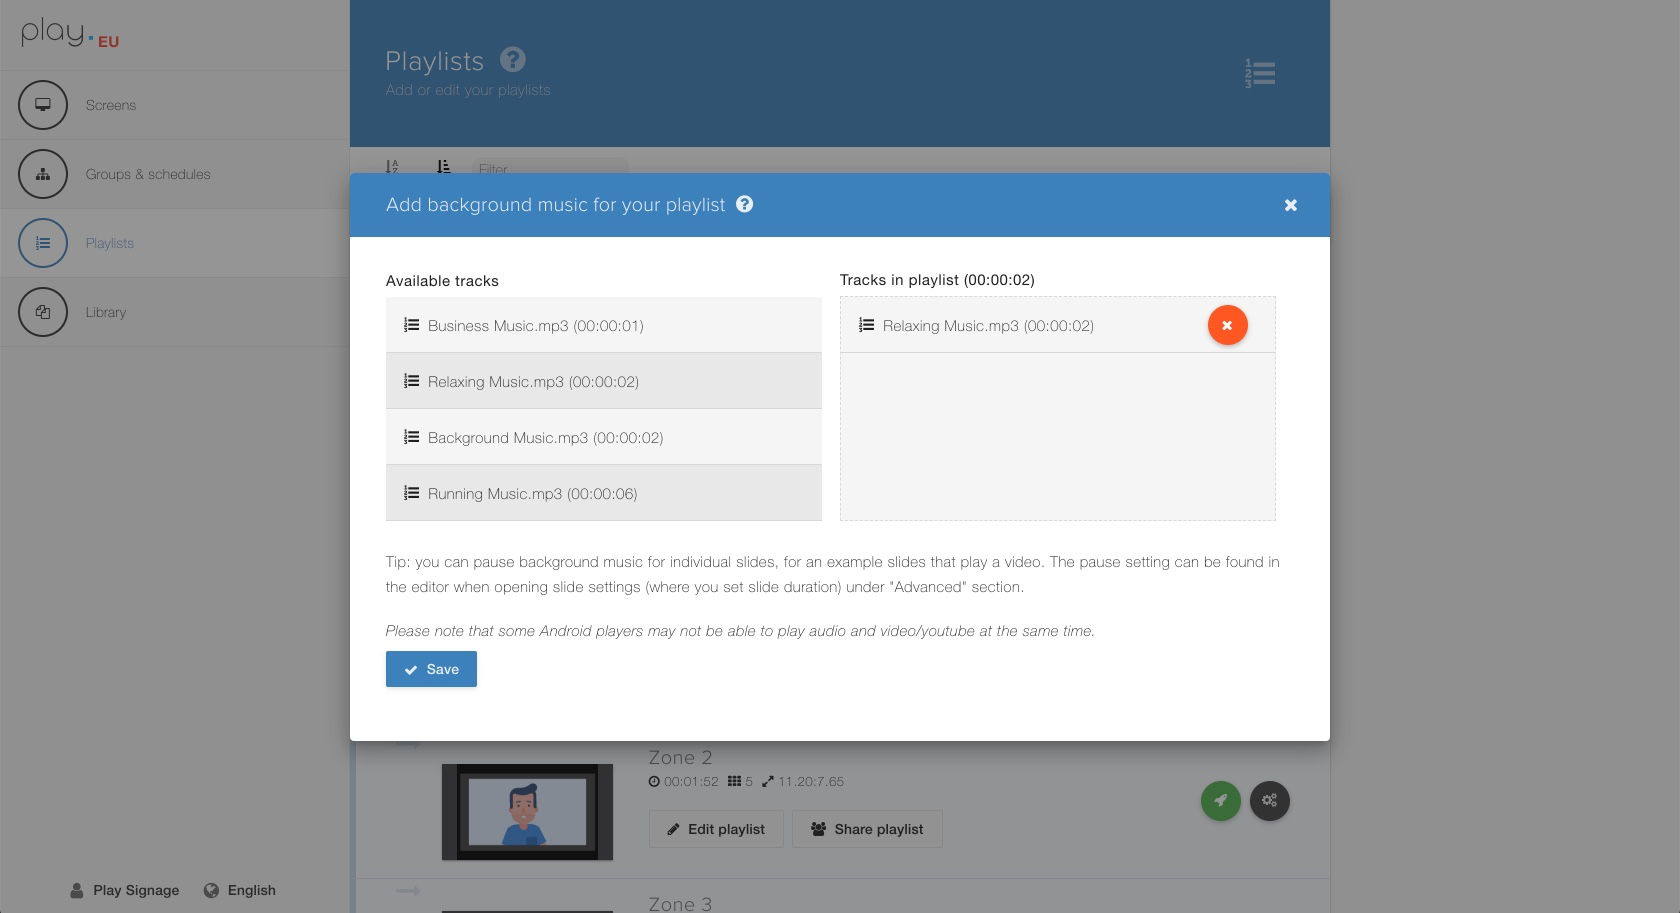 Add background music to your playlists and/or individual slides in your content.